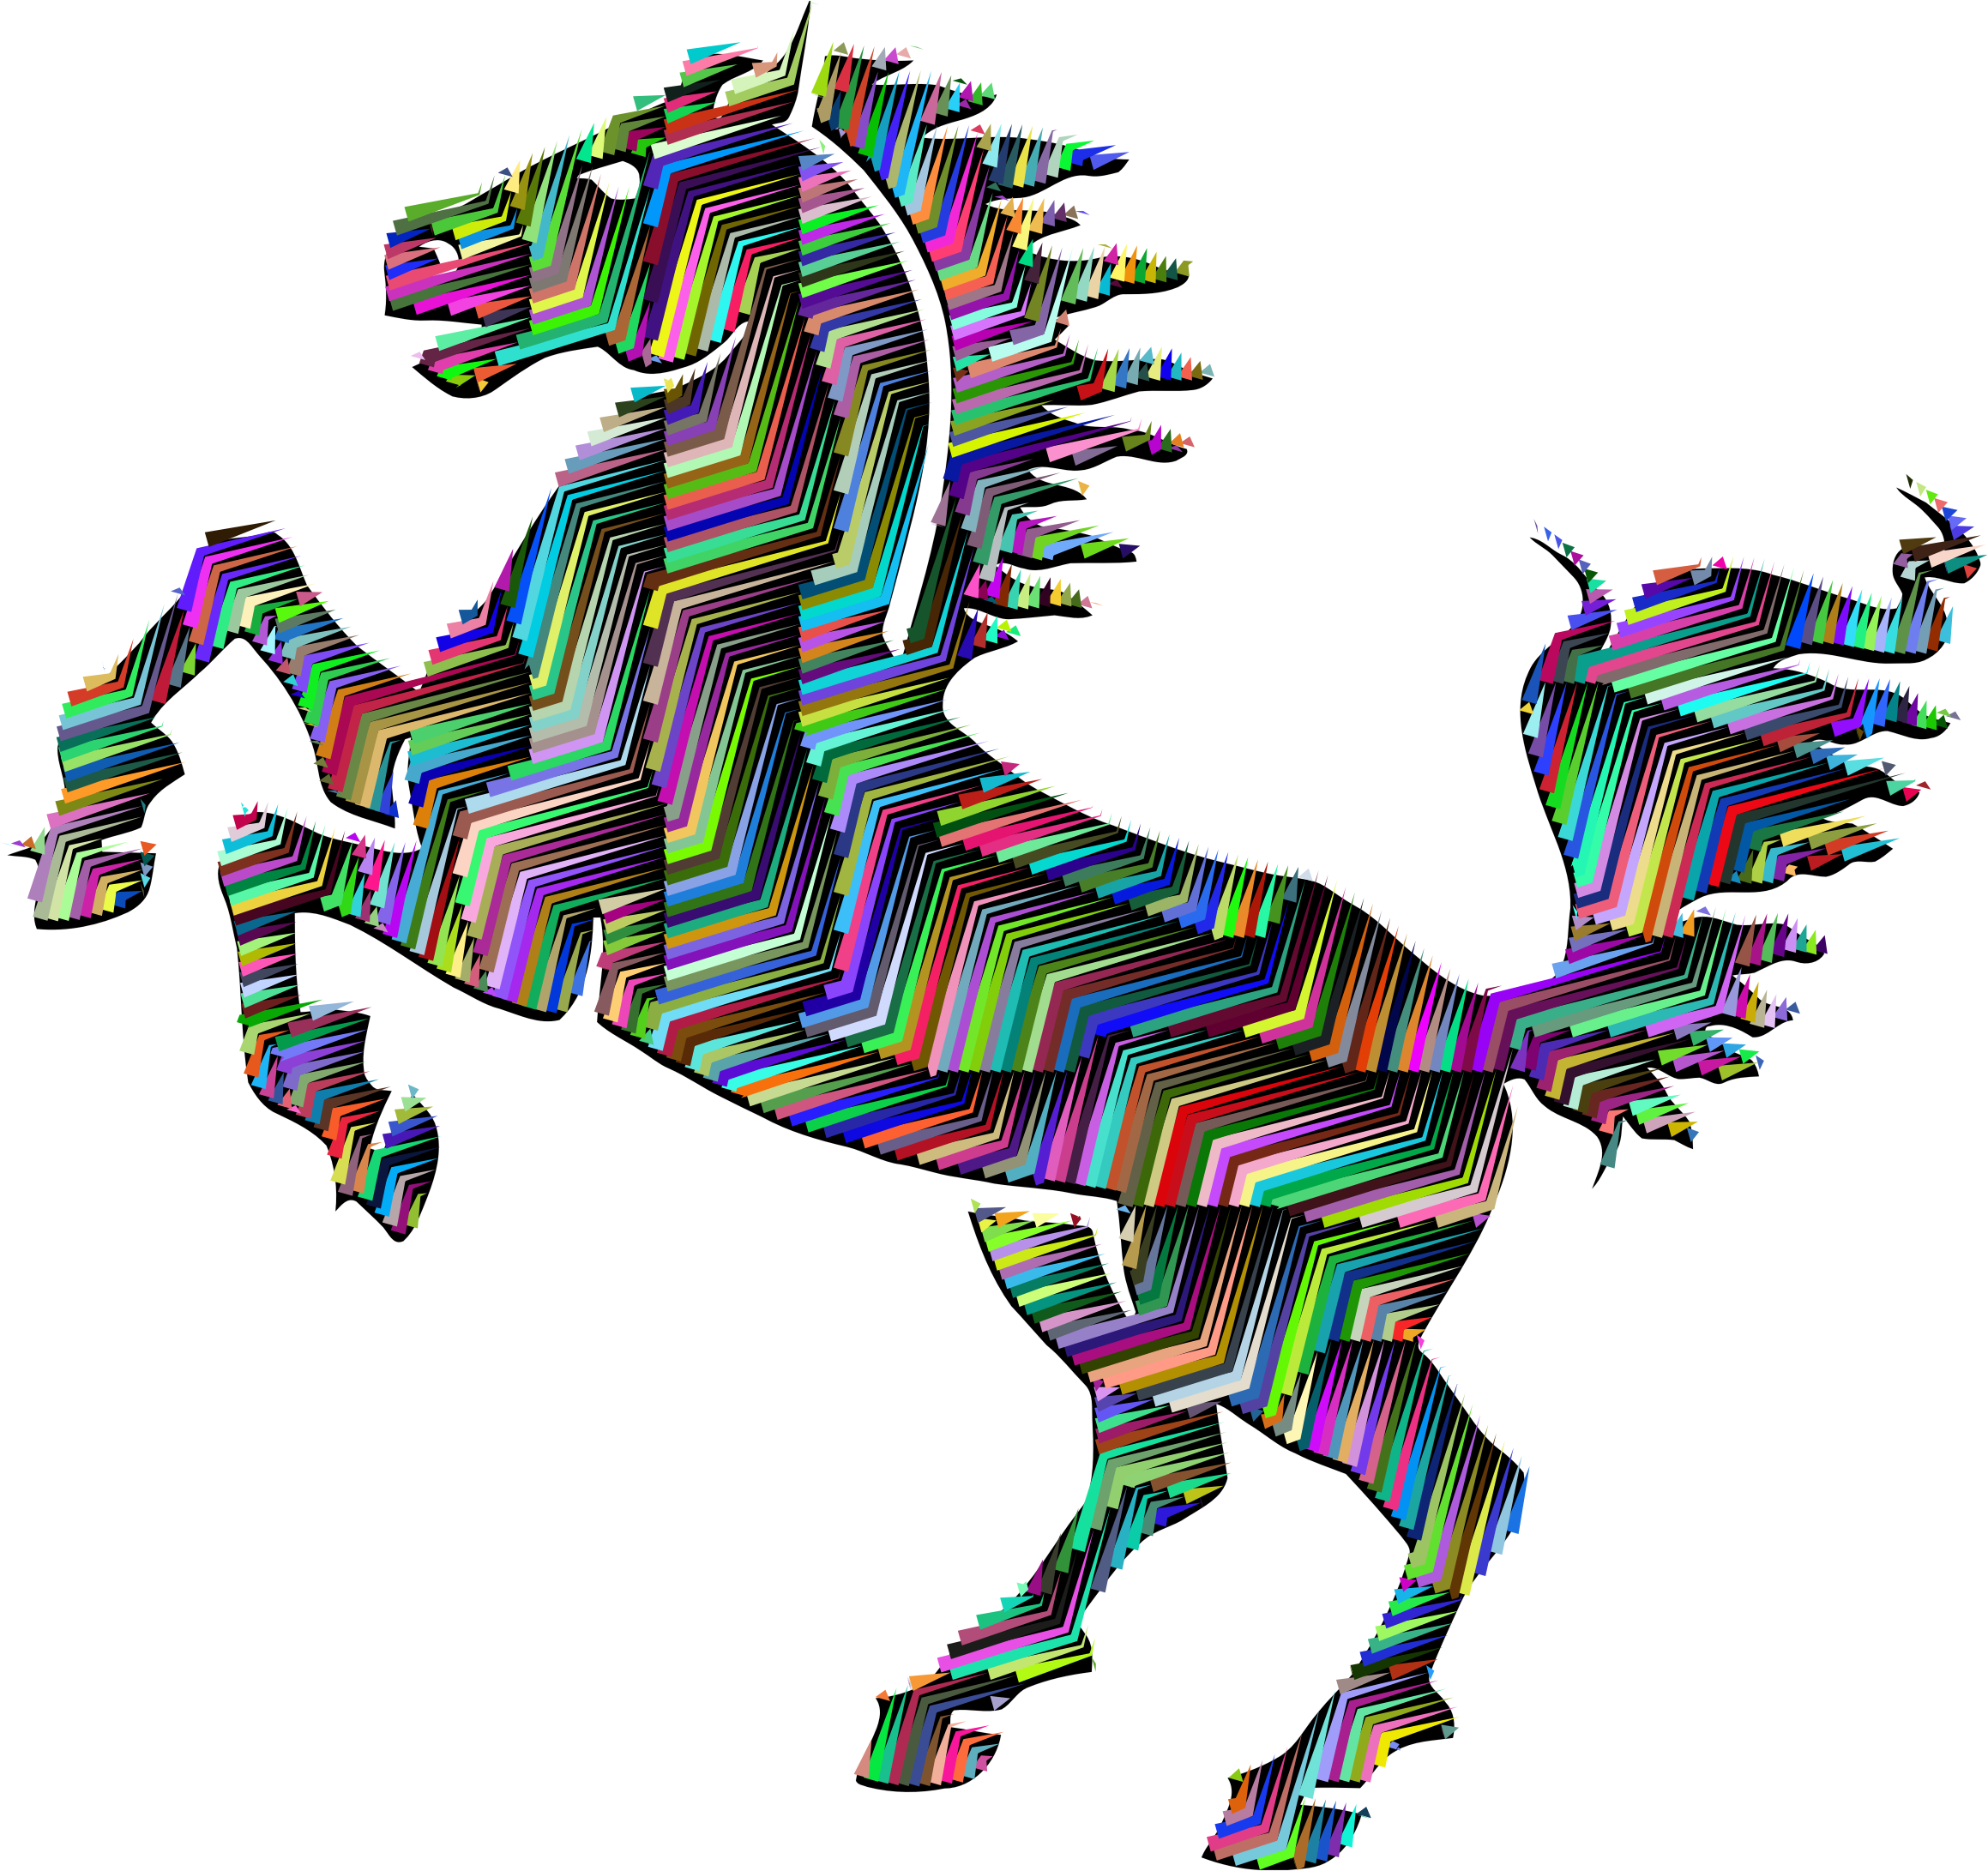 Horse clip art clear background. Prismatic silhouette abstract line